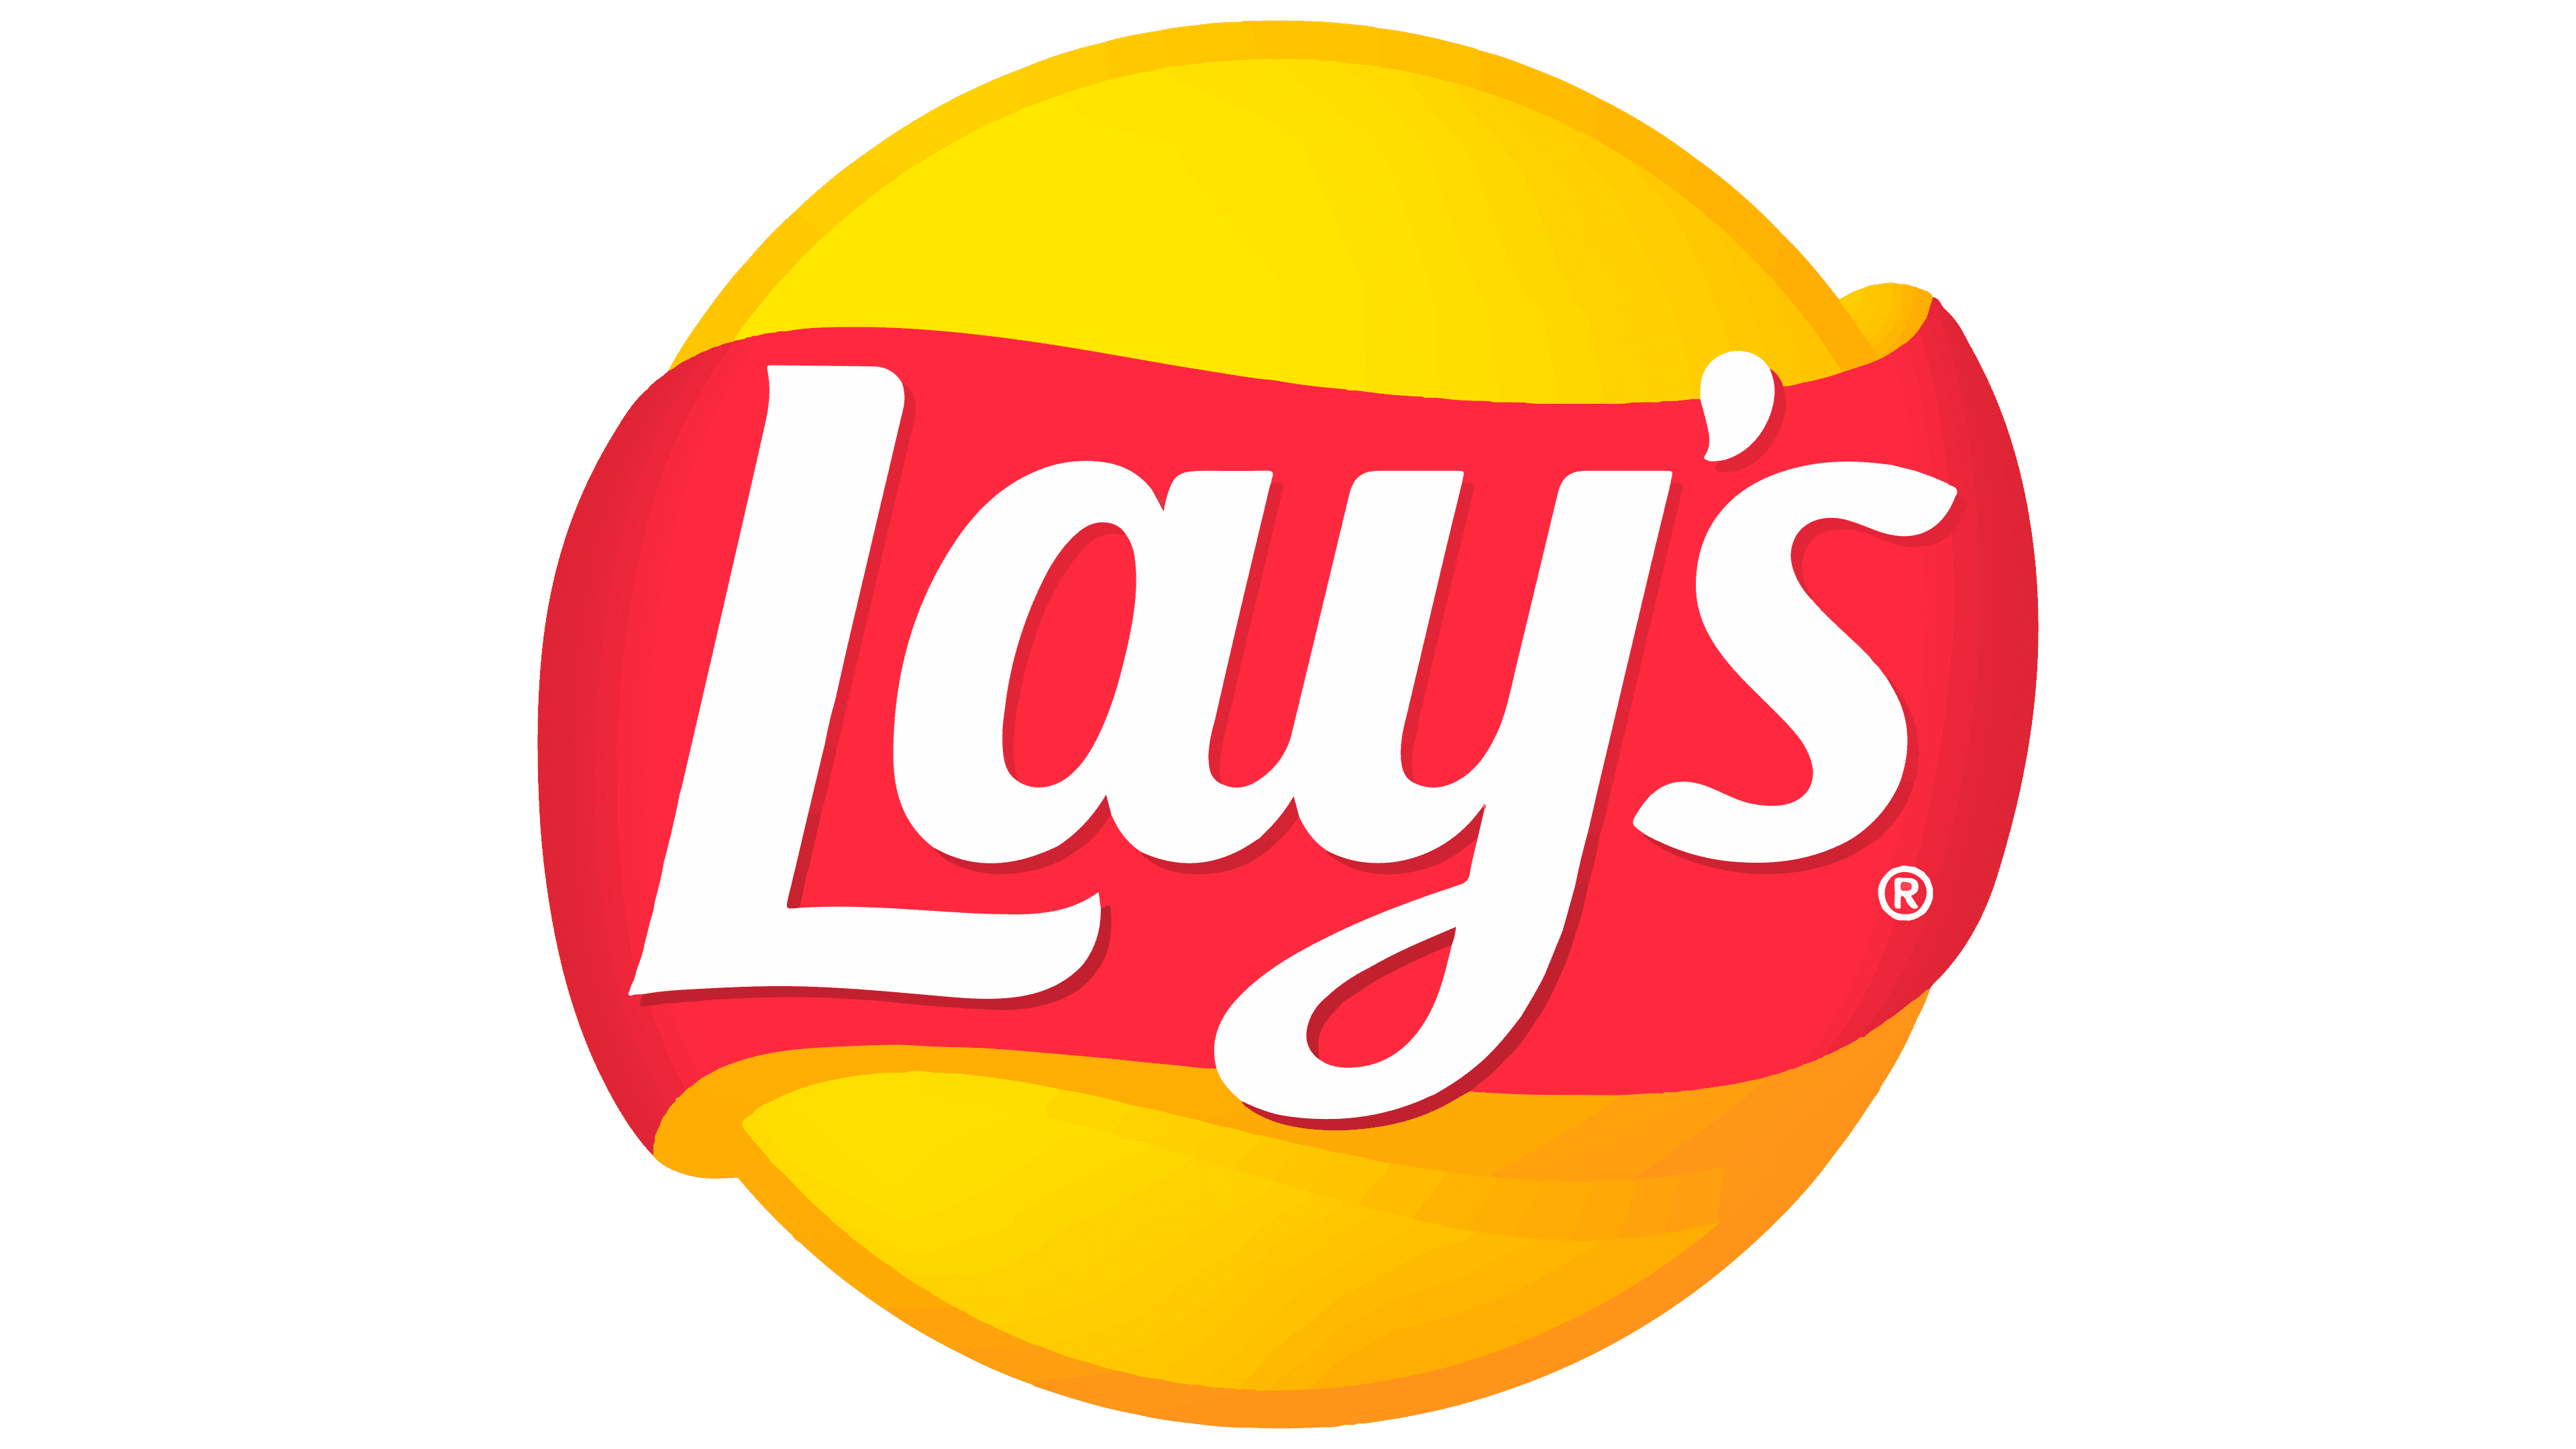 Lay's Logo   The most famous brands and company logos in the world